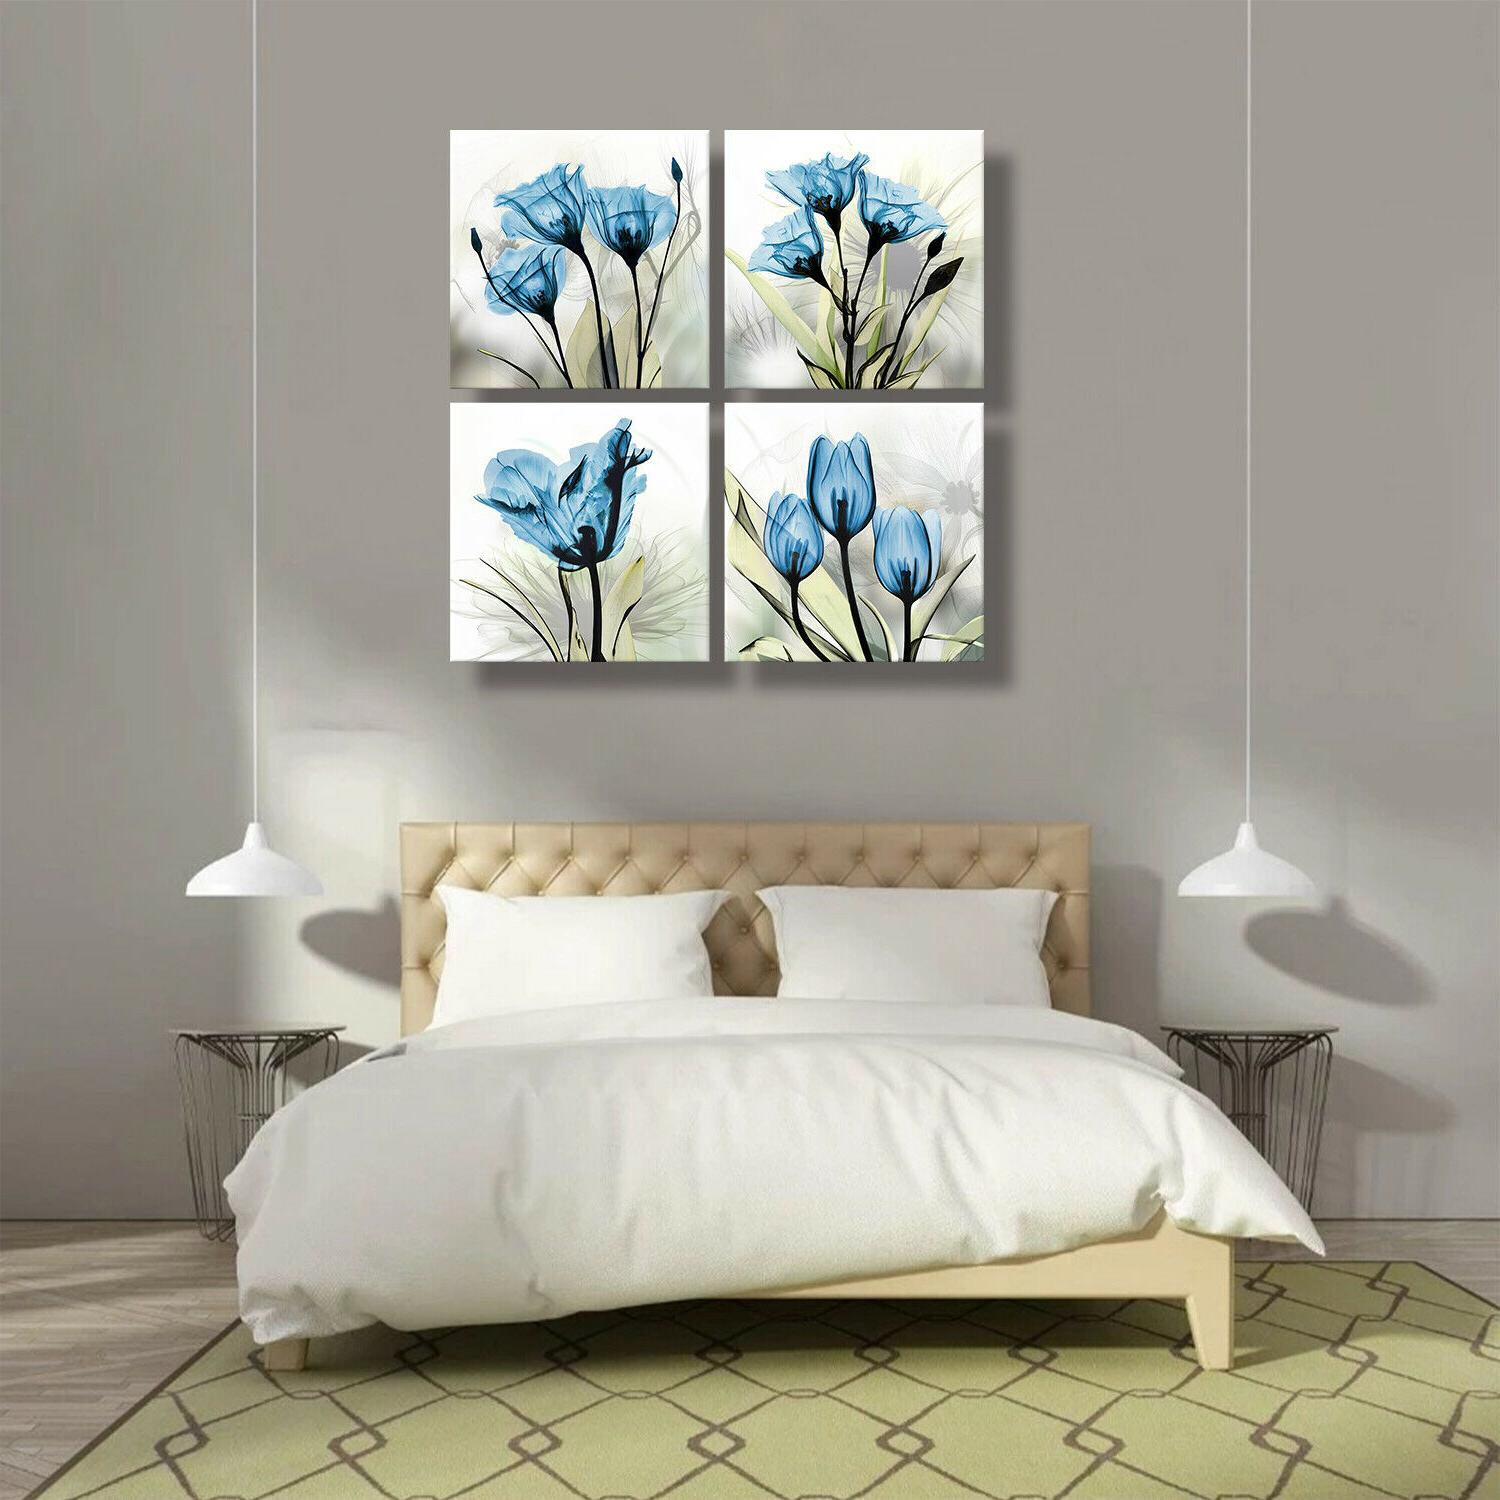 Flower Canvas Wall Decor Blue for Kitchen